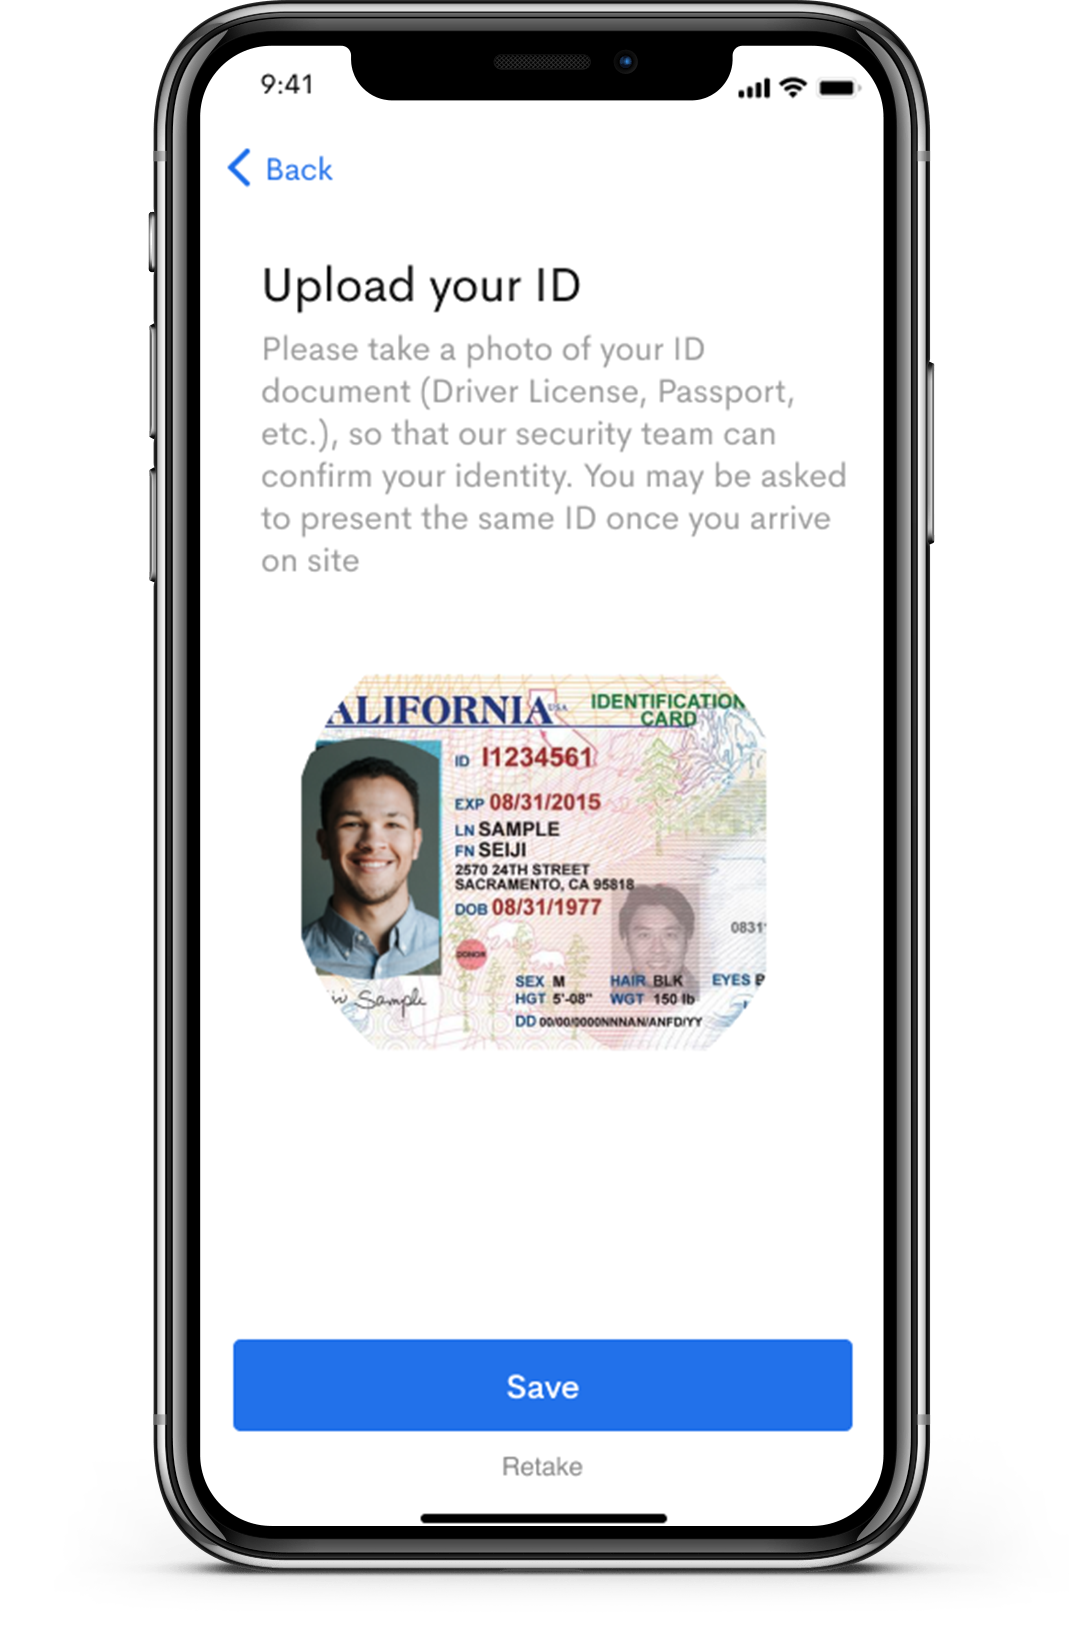 Visitor Management requires guests to upload an ID for secure identification.